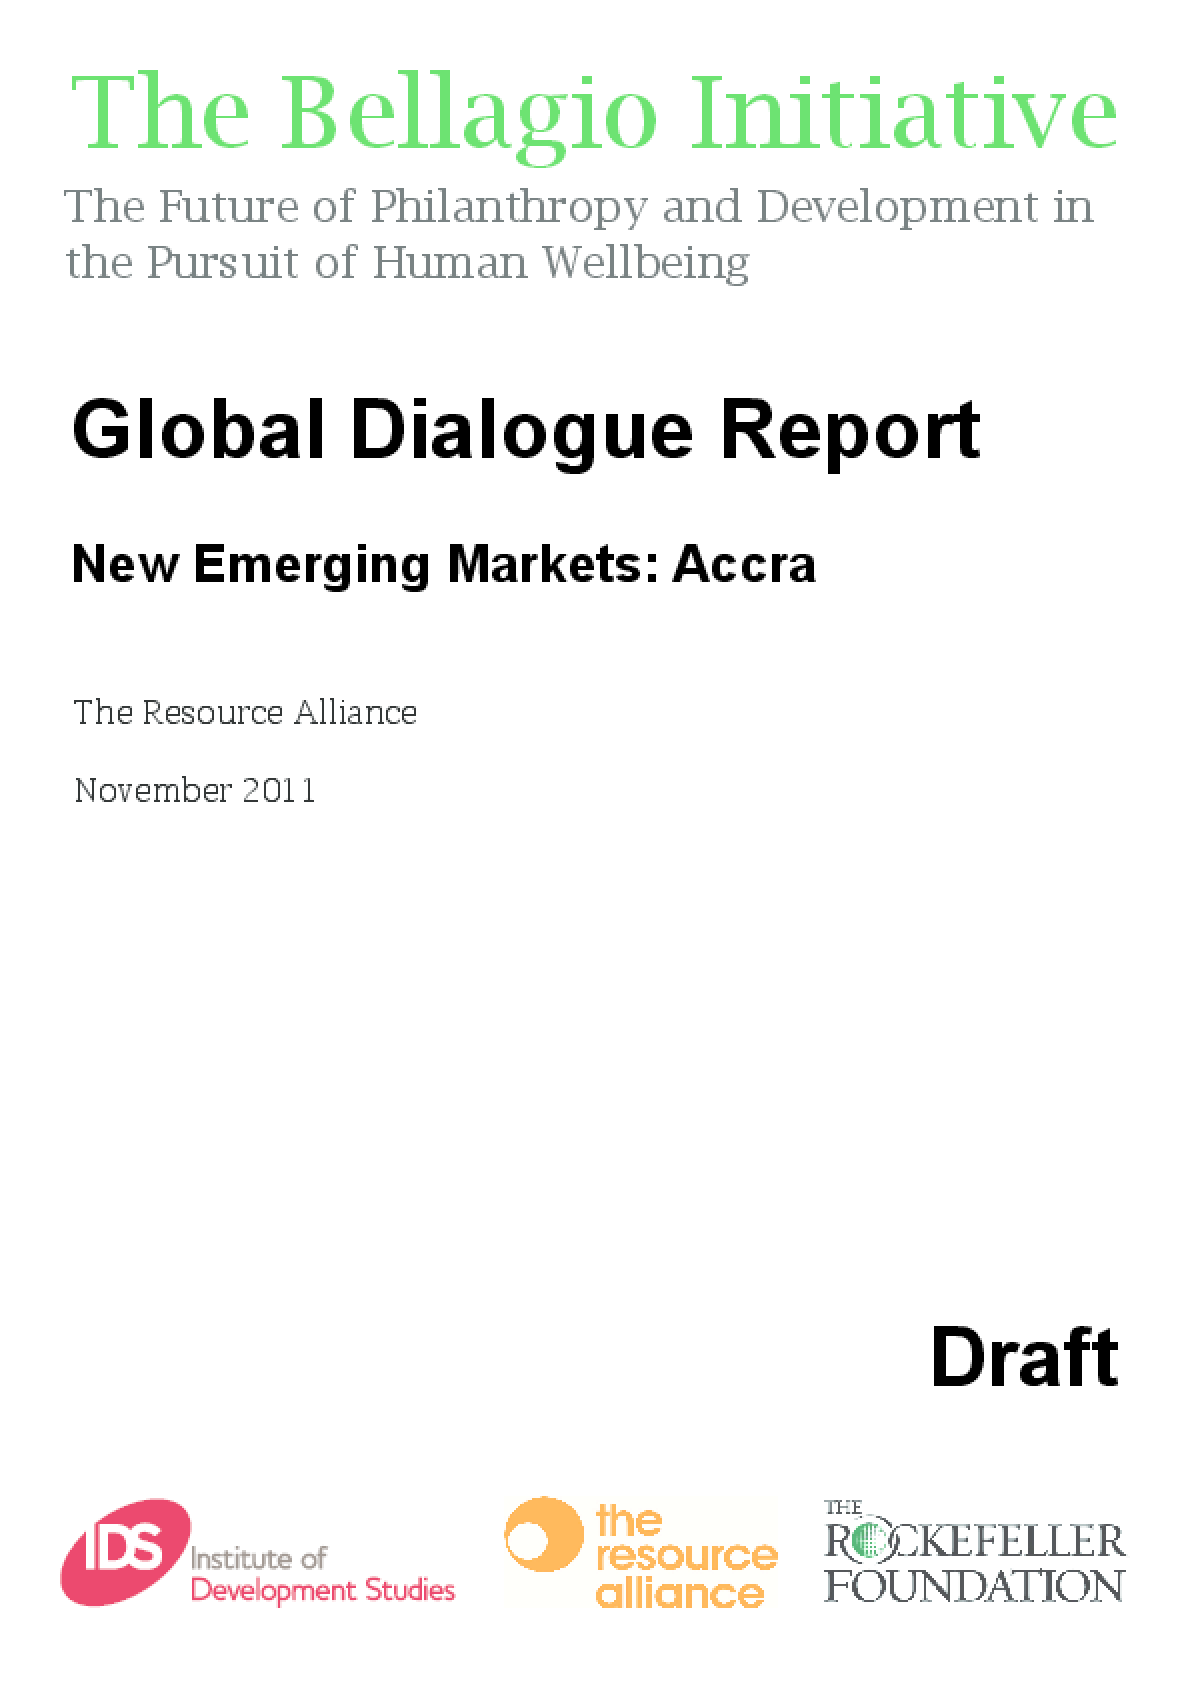 Global Dialogue Report - New Emerging Markets: Accra